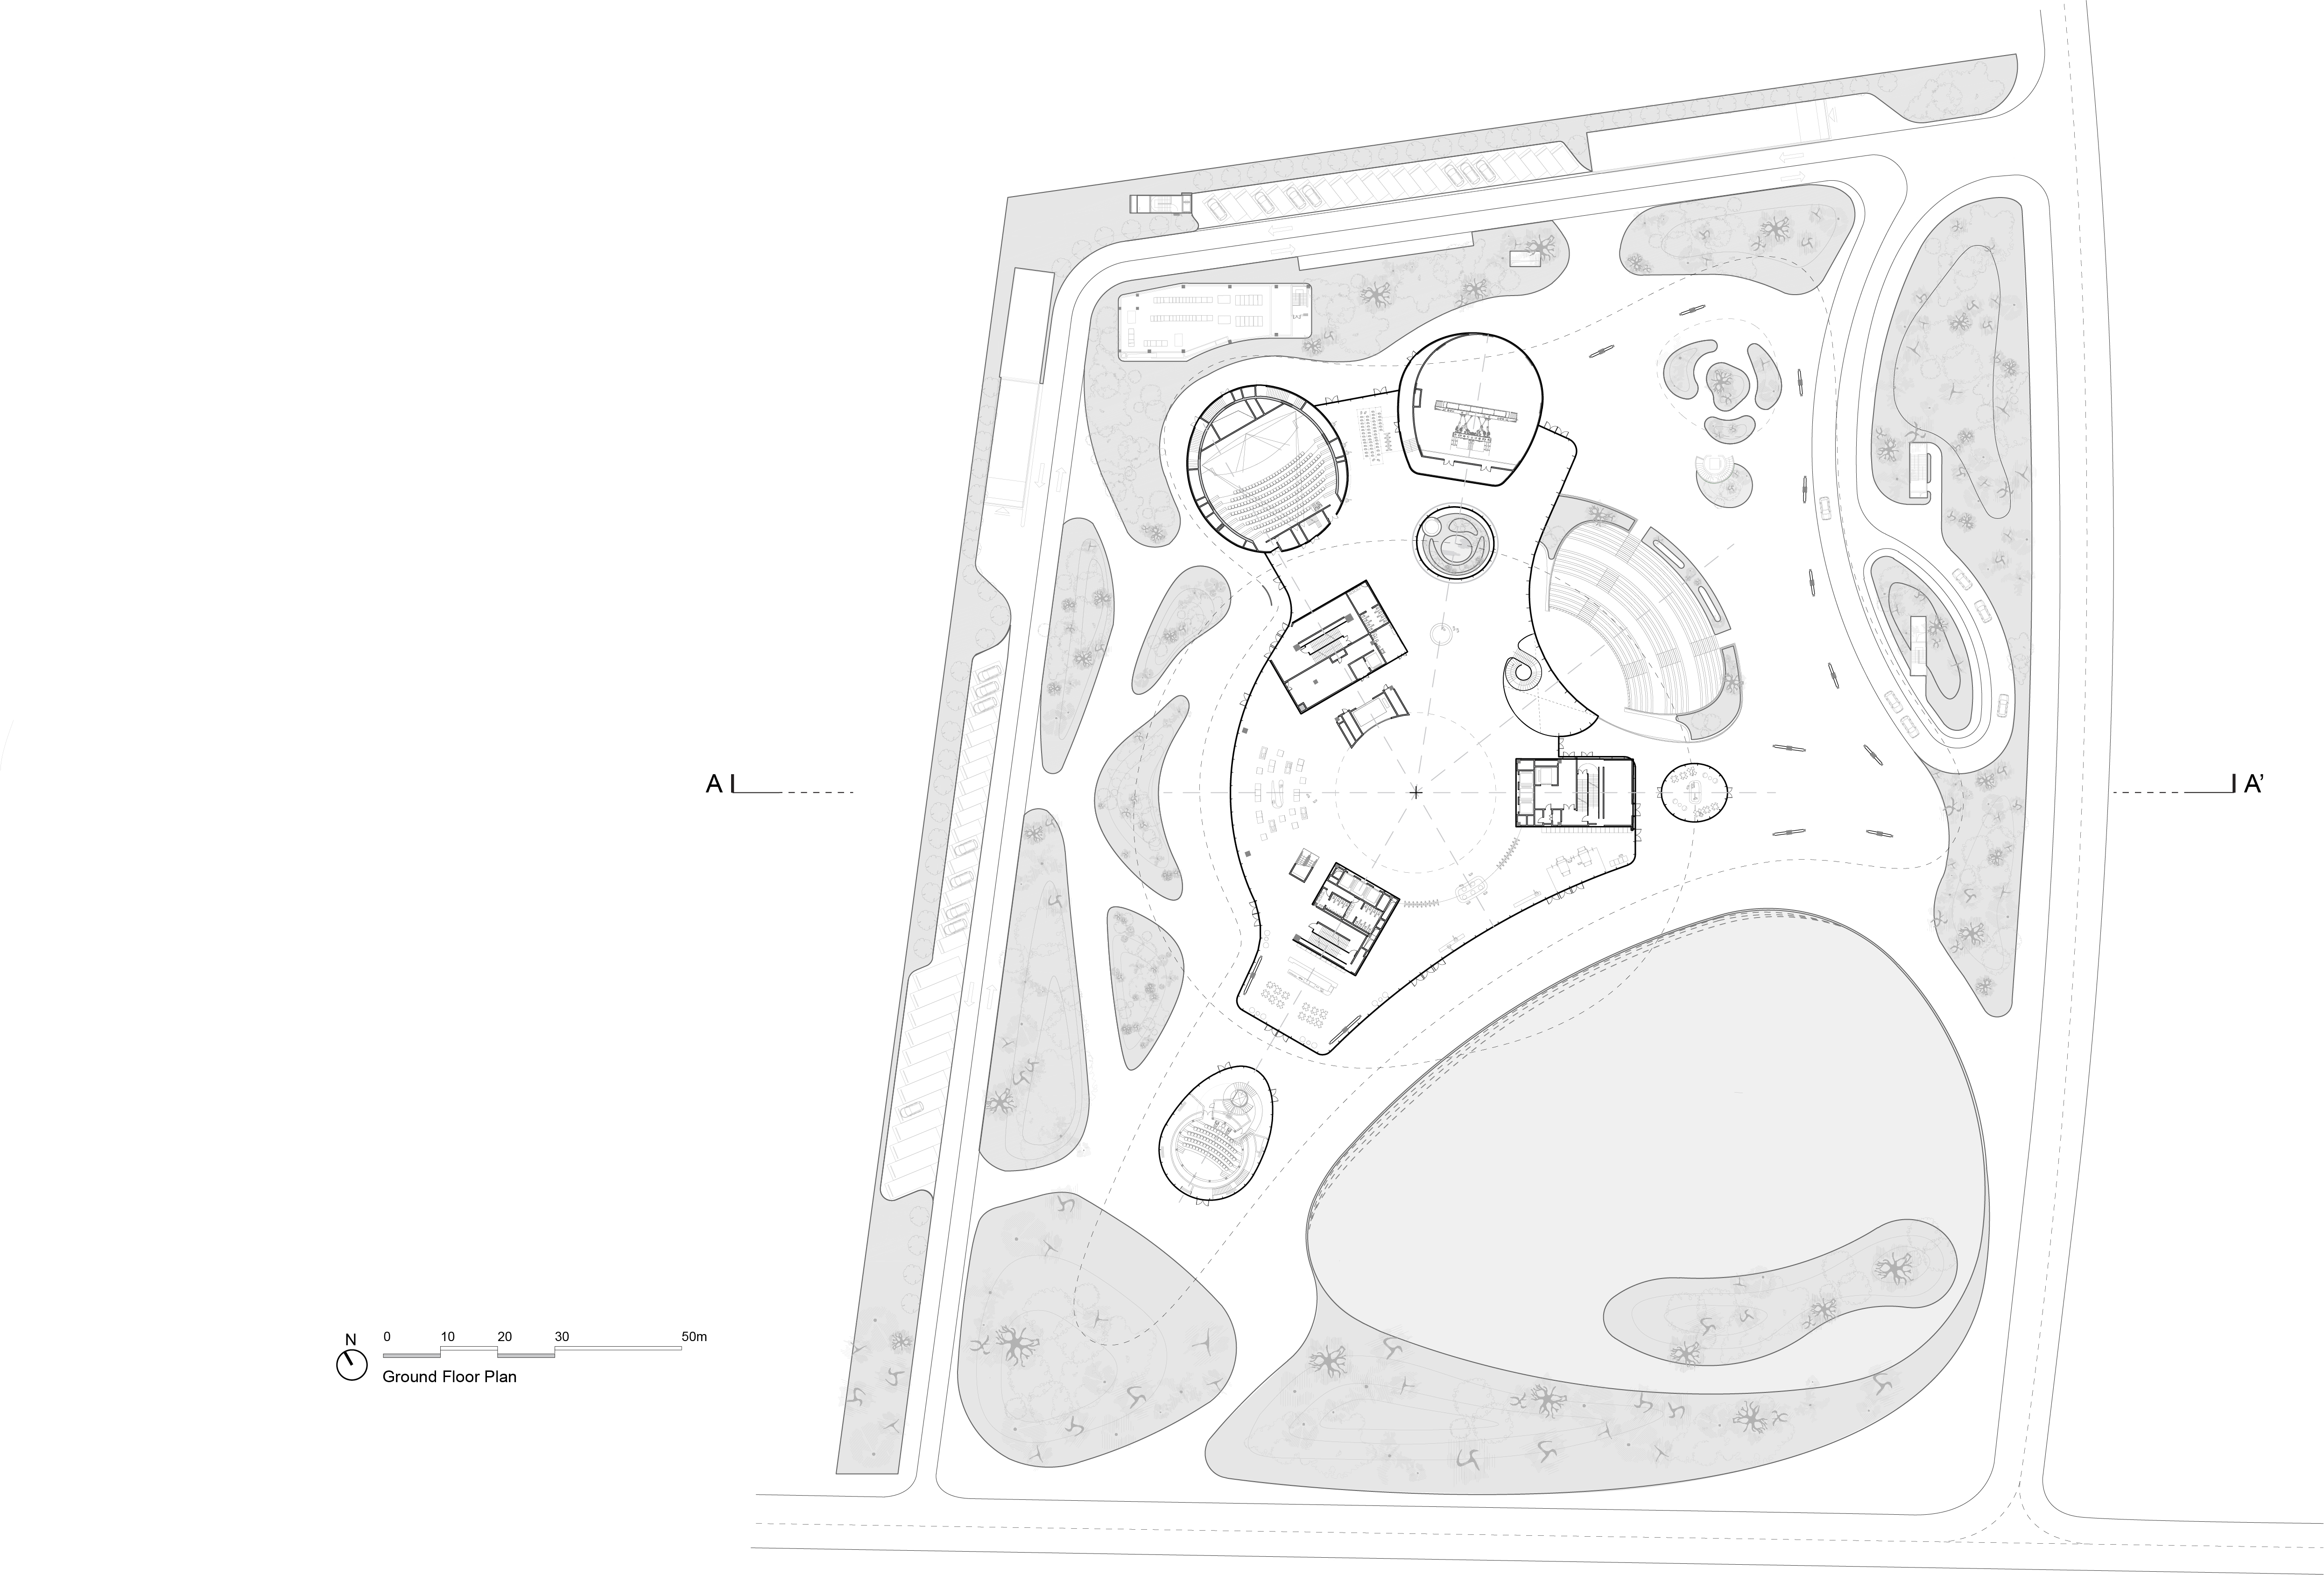 MAD_Hainan Science and Technology Museum_1st Floor Plan